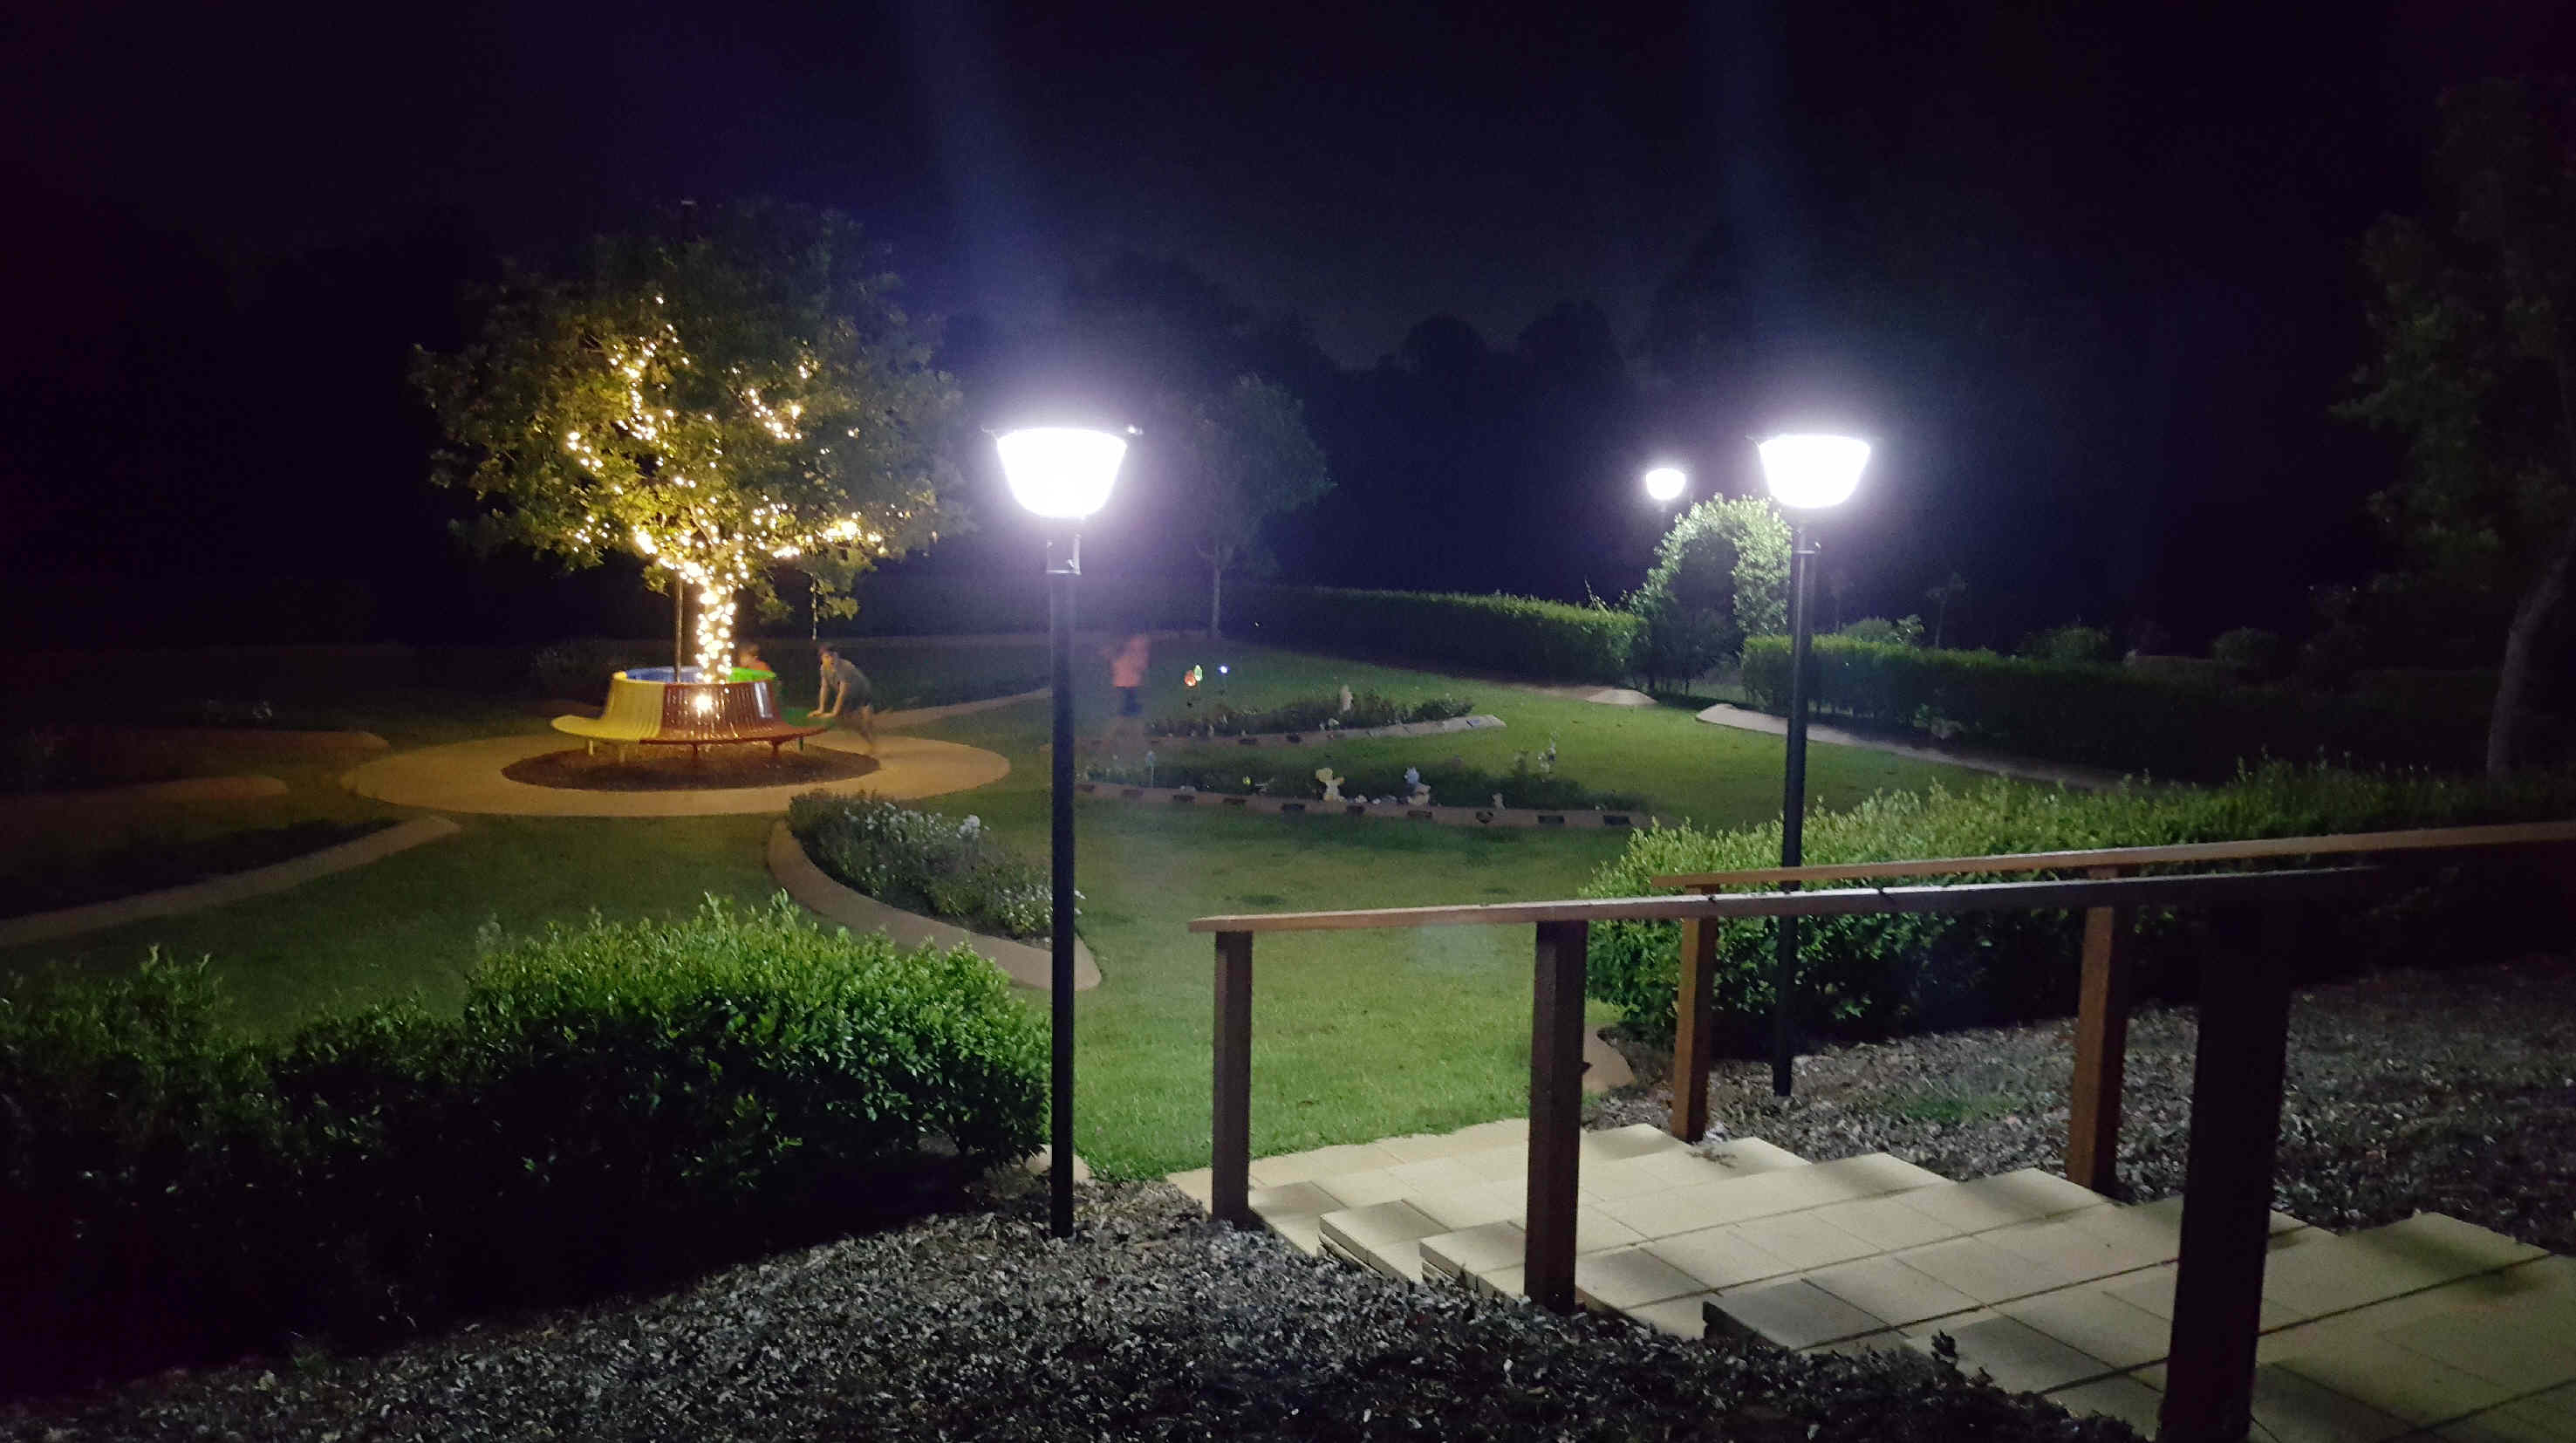 Buy quality solar lights blackfrog solar solar lights button to view our range of high quality solar powered post lights blackfrog solar lights aloadofball Image collections